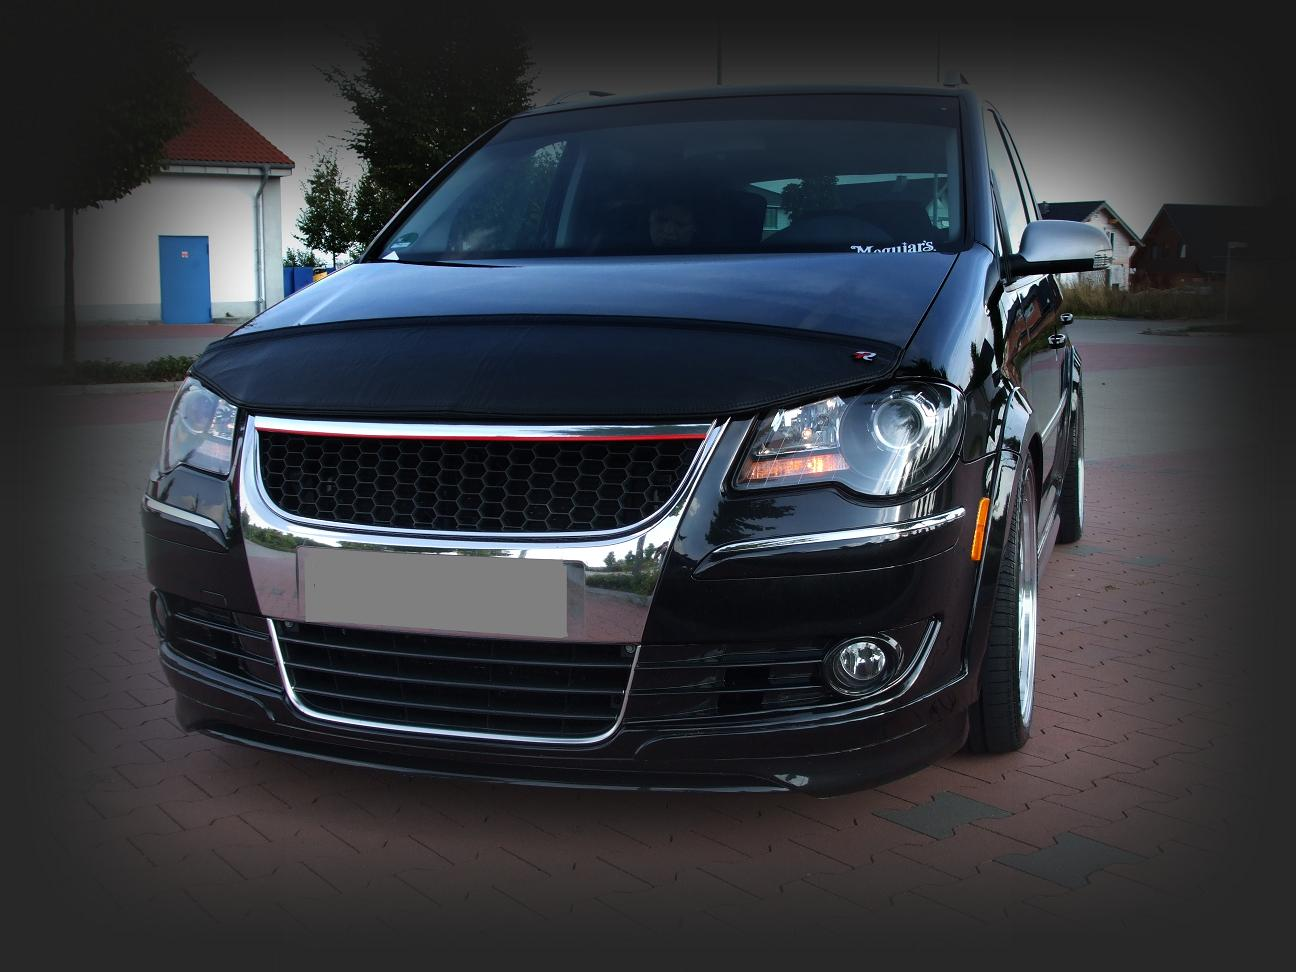 Vw Golf Hamana moreover Maxresdefault together with Vw Touran R Line Lowered On Radi Wheels Looks Different in addition Tomason Tn Dark Hyperblack Polished Felge Picture as well Passat Itdark. on tuning touran